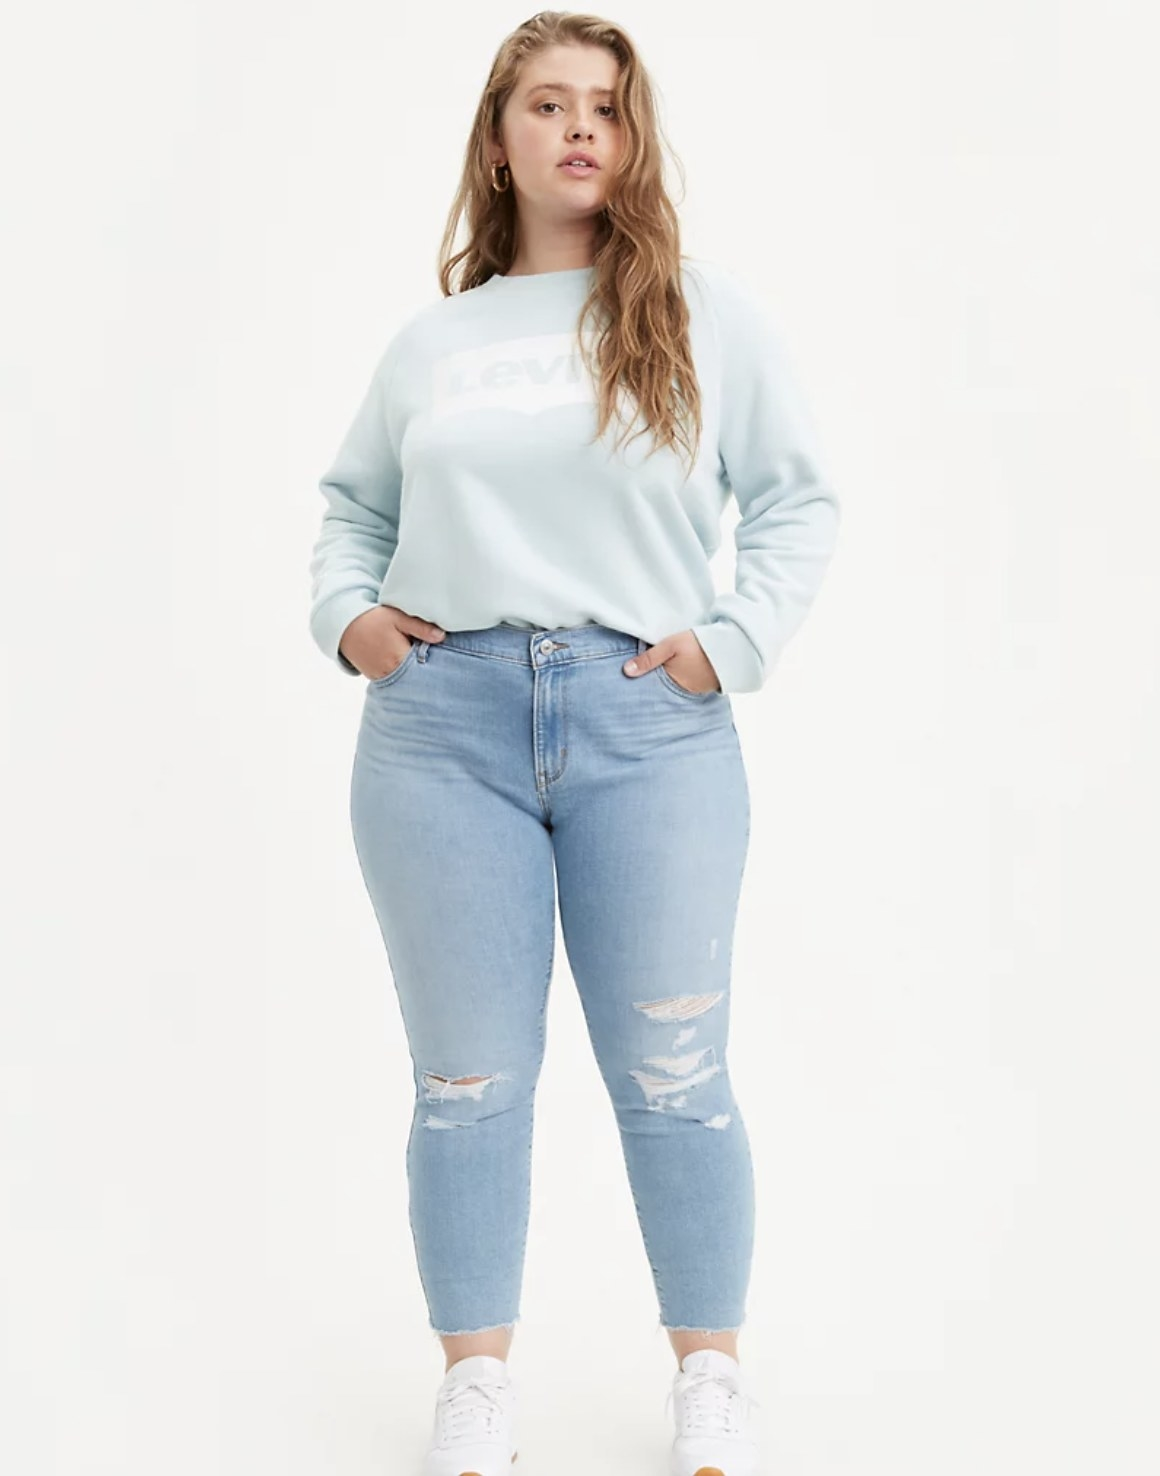 Model is wearing light blue denim jeans with rips and a light blue sweatshirt